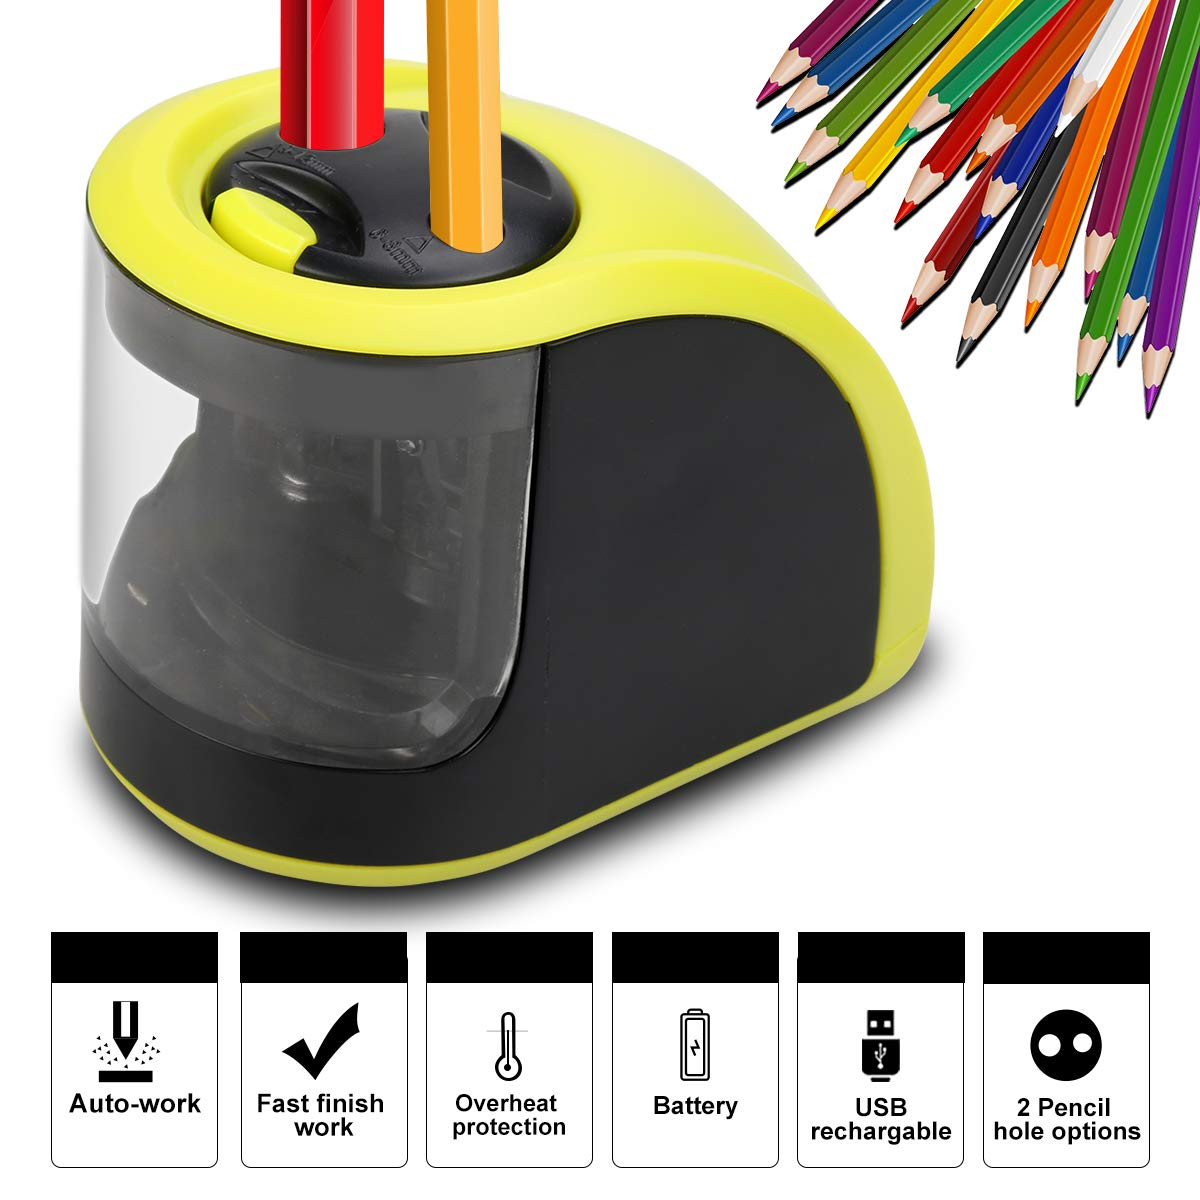 Electric Pencil Sharpener - Rechargeable Pencil Sharpener with USB or Battery Operated - 2 Holes(6-8mm & 9-12mm) - Perfect Gift for Kids, Artist, Student, Professionals (batteries not included) by Li LightSame